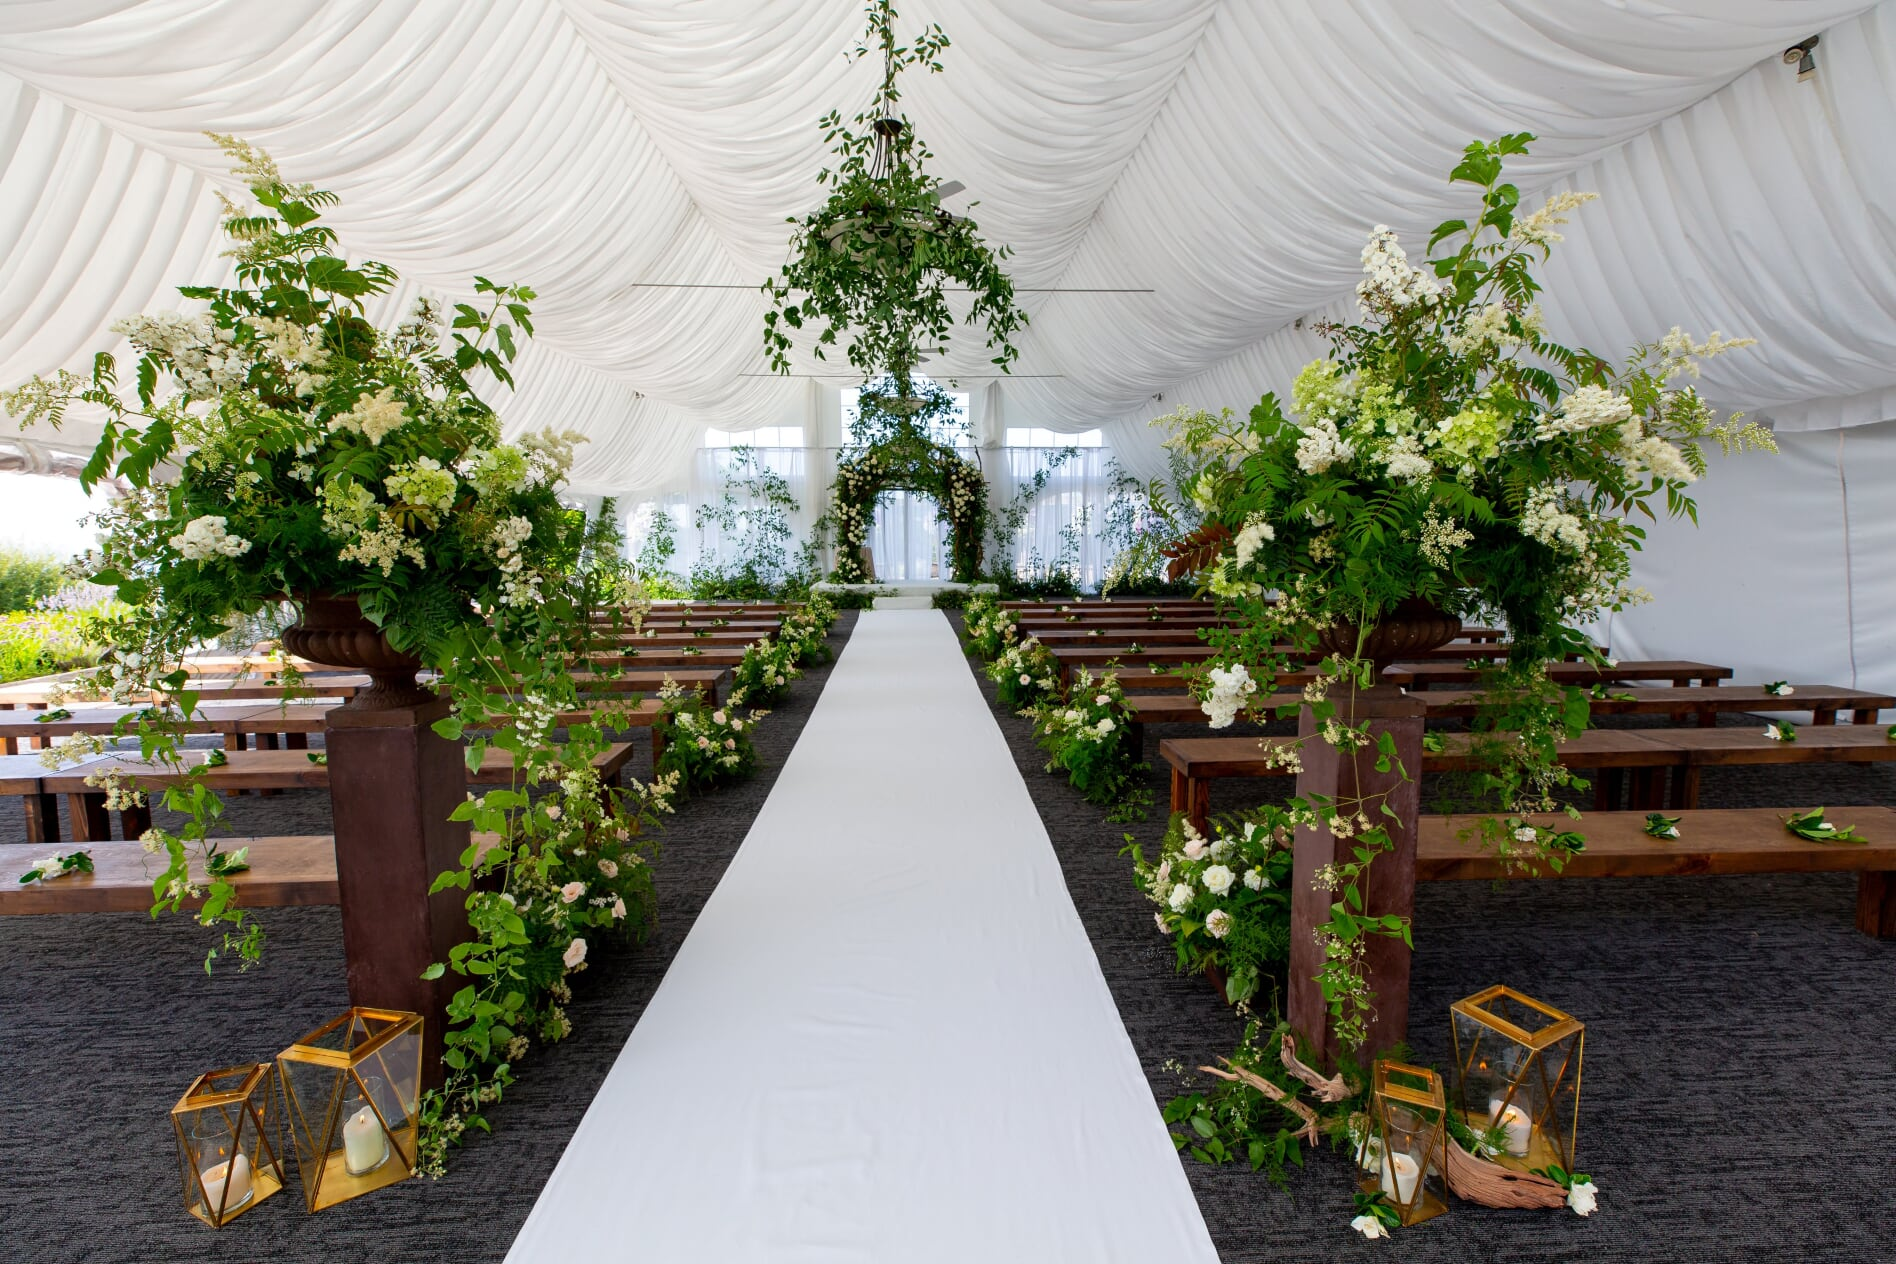 Midsummer Night's Dream Wedding ceremony aisle lined with greenery